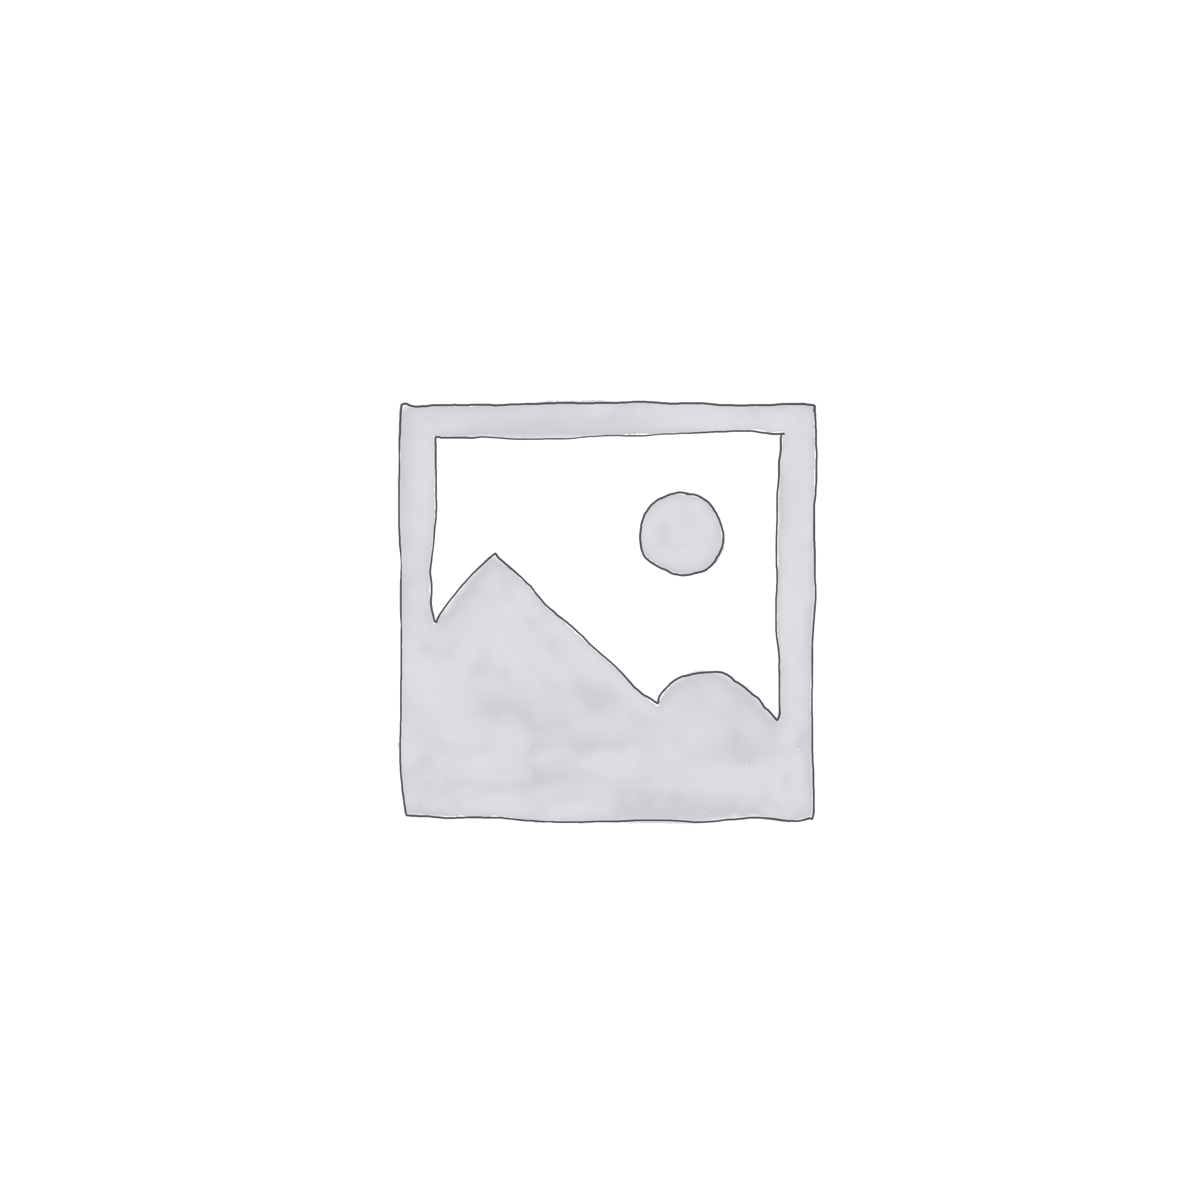 On the Day